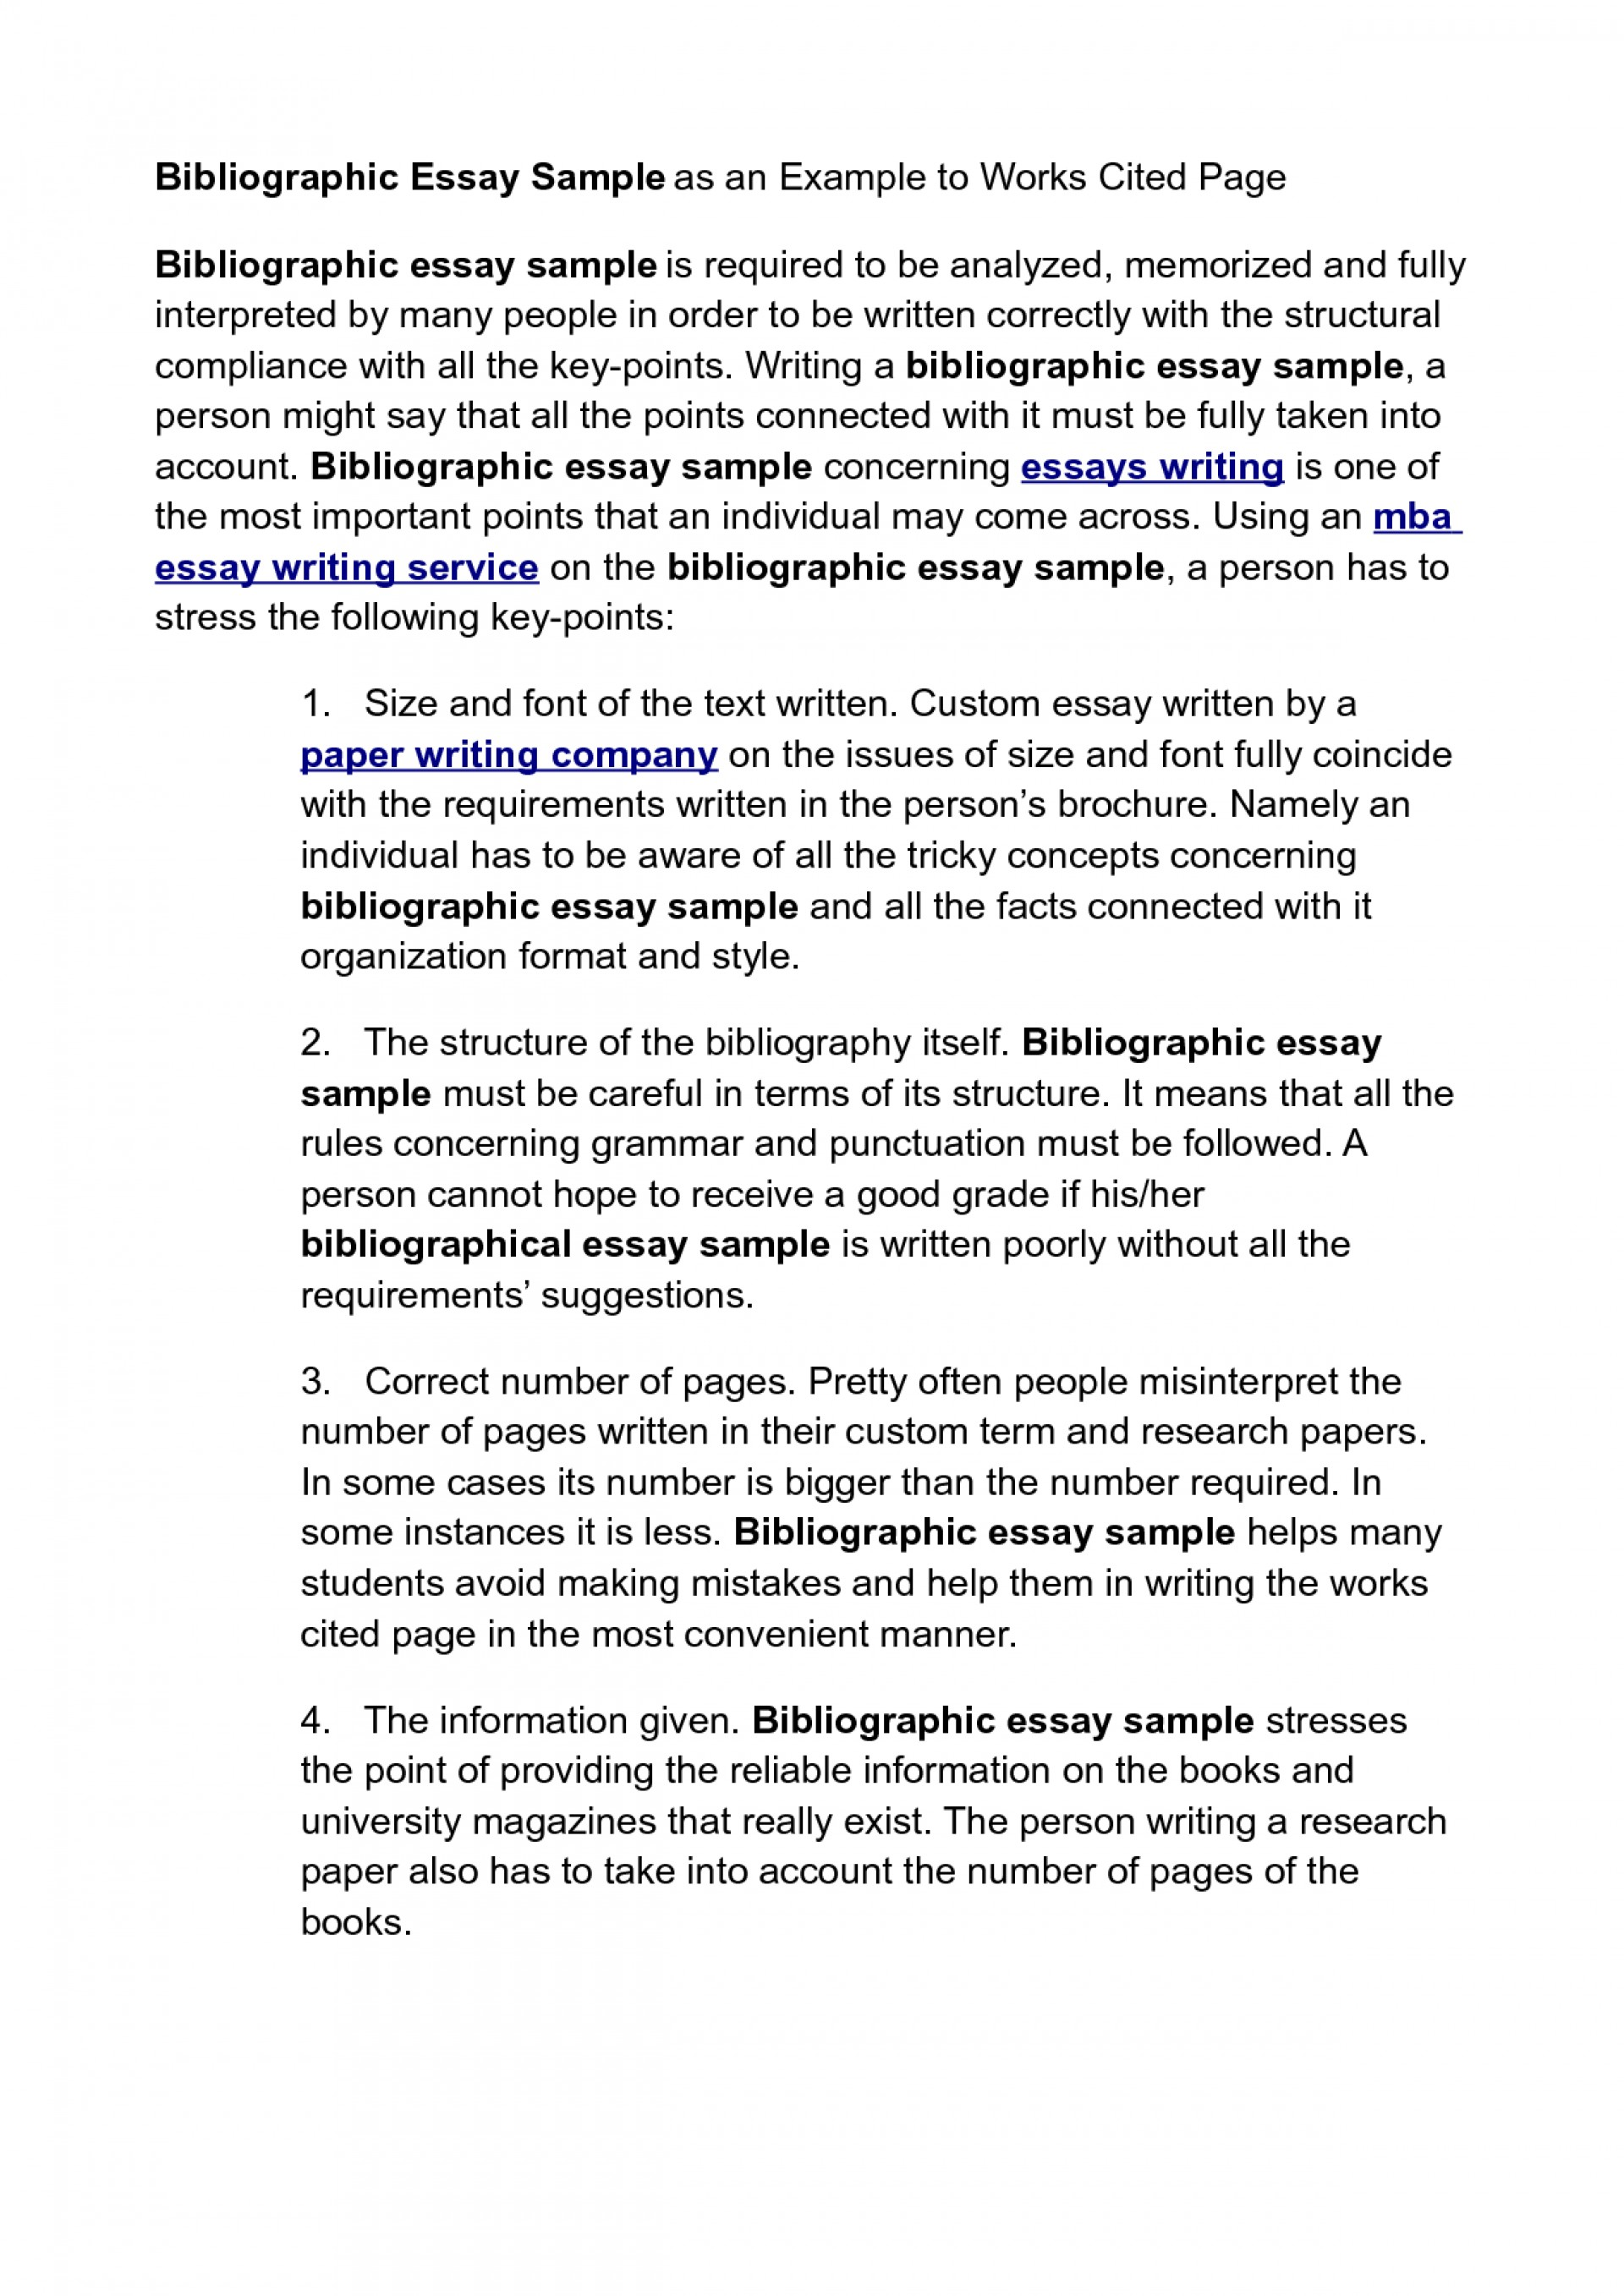 005 Sample Persuasive Essay With Works Cited Example Of Mla L How To Cite Work In